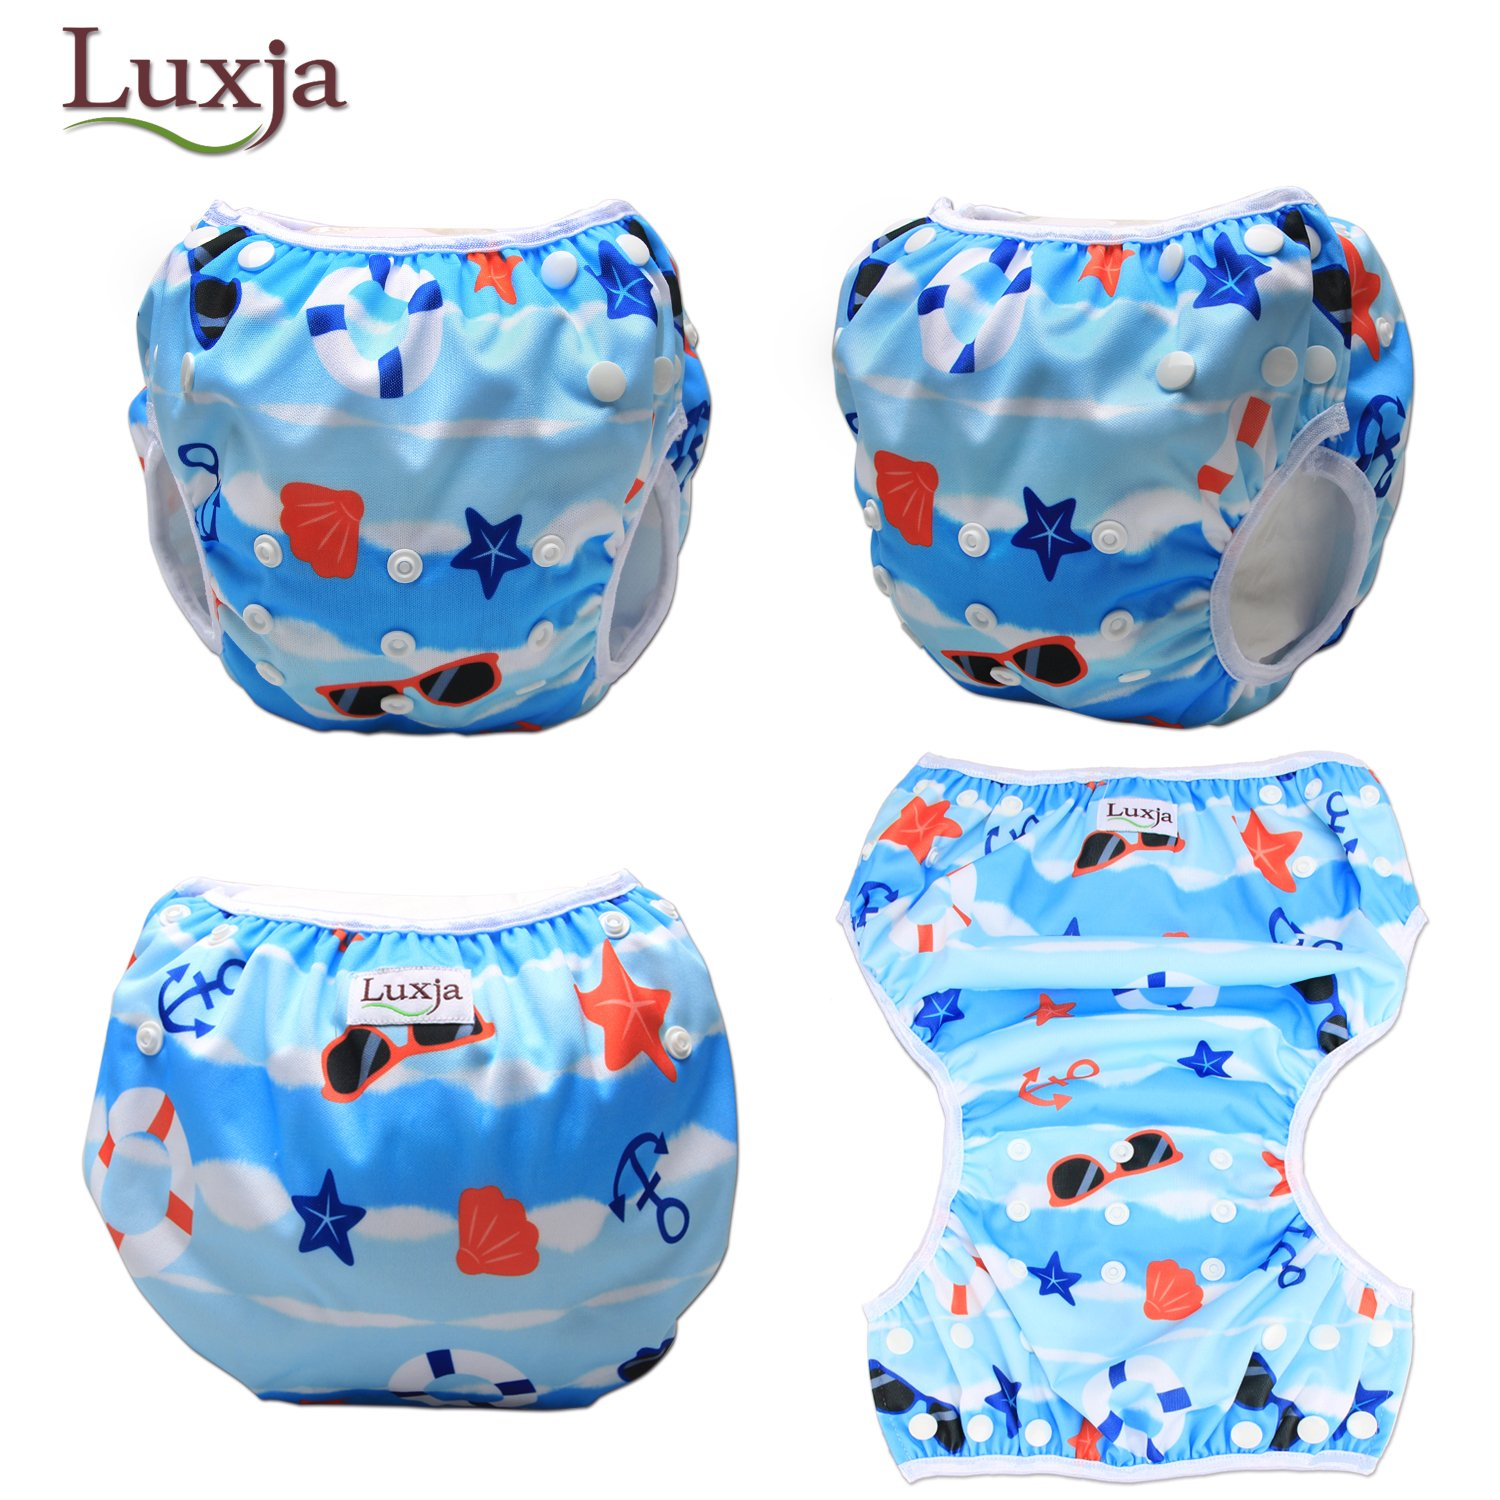 0-3 Years LUXJA Reusable Swim Diaper Adjustable Swimming Diaper for Baby Pack of 2 Shell + Blue Fish